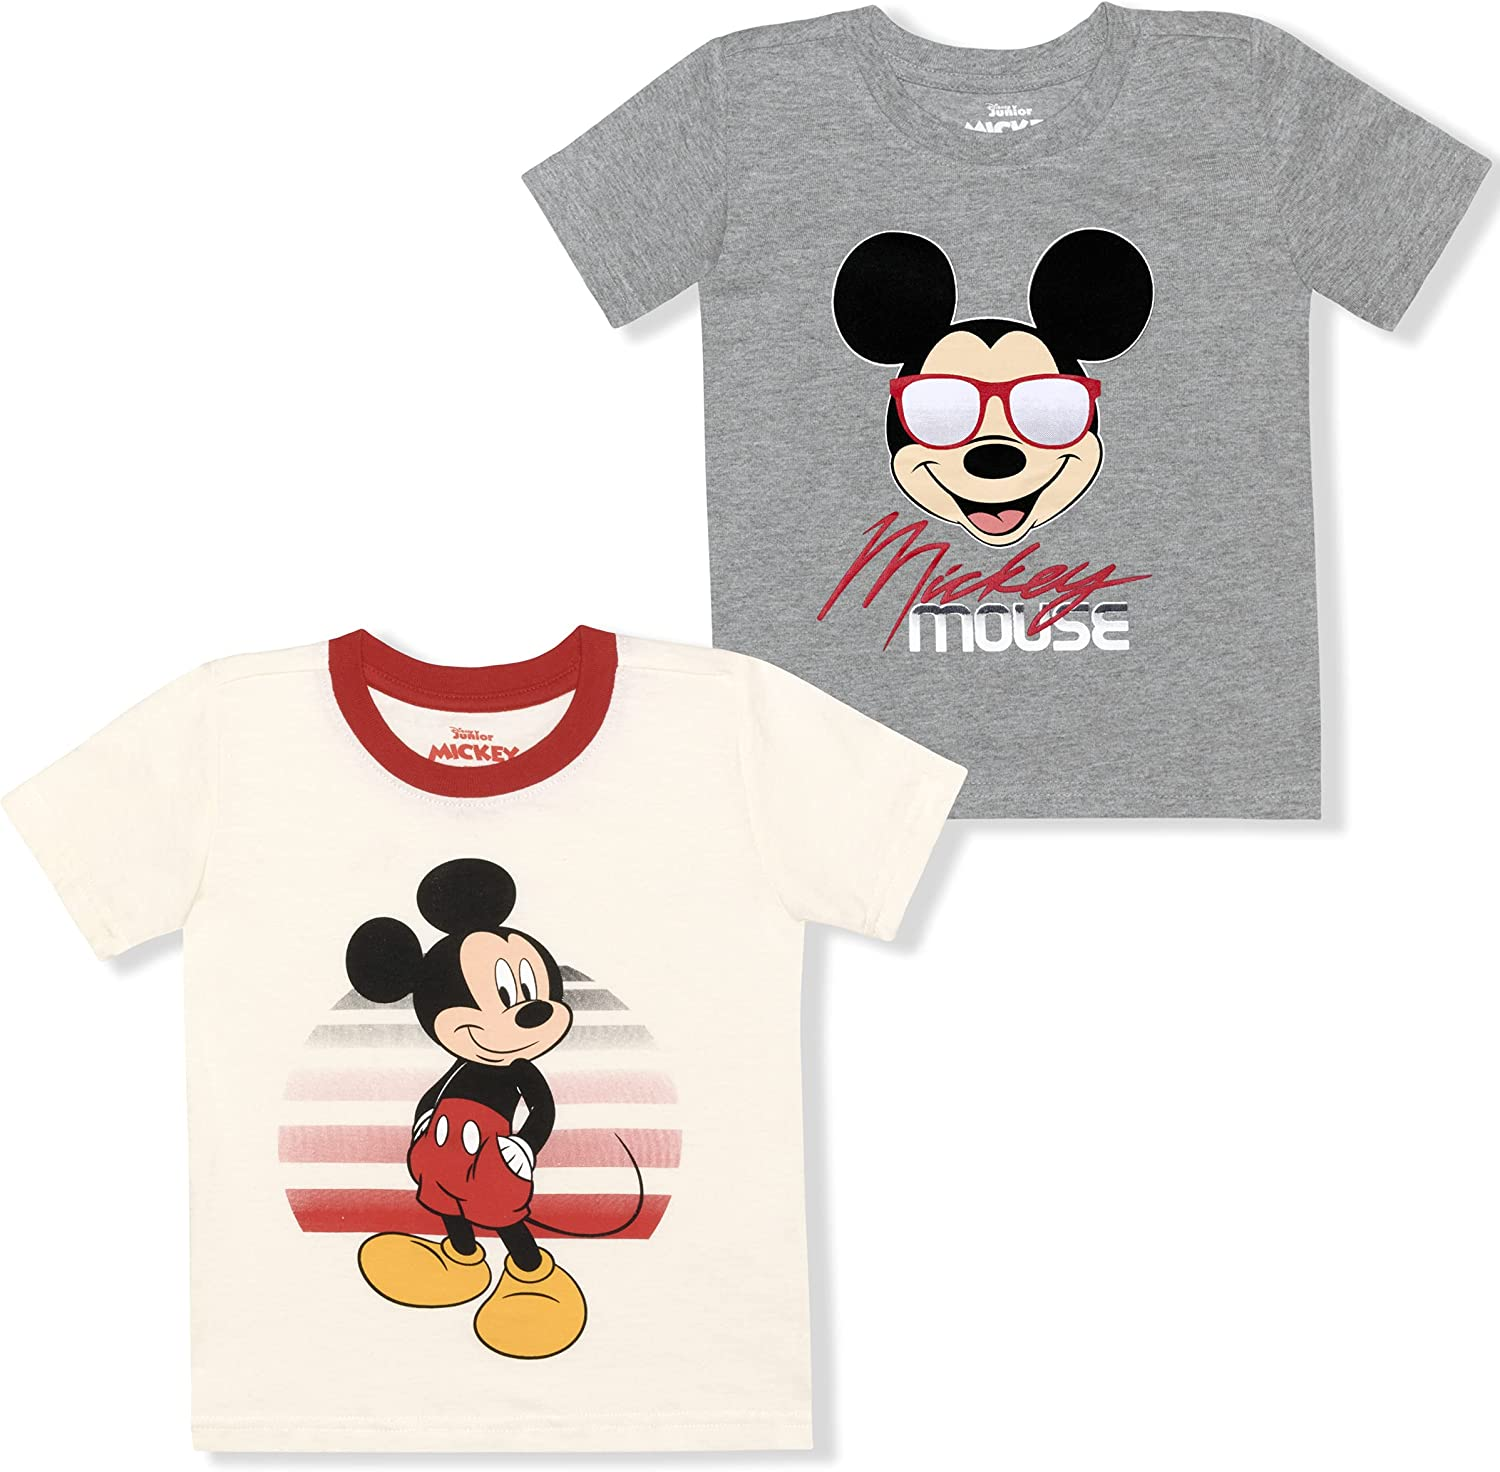 Disney Boy's 2-Pack Mickey Mouse Graphic Tee Shirt Set, 100% Cotton, White/Grey, 12 Months